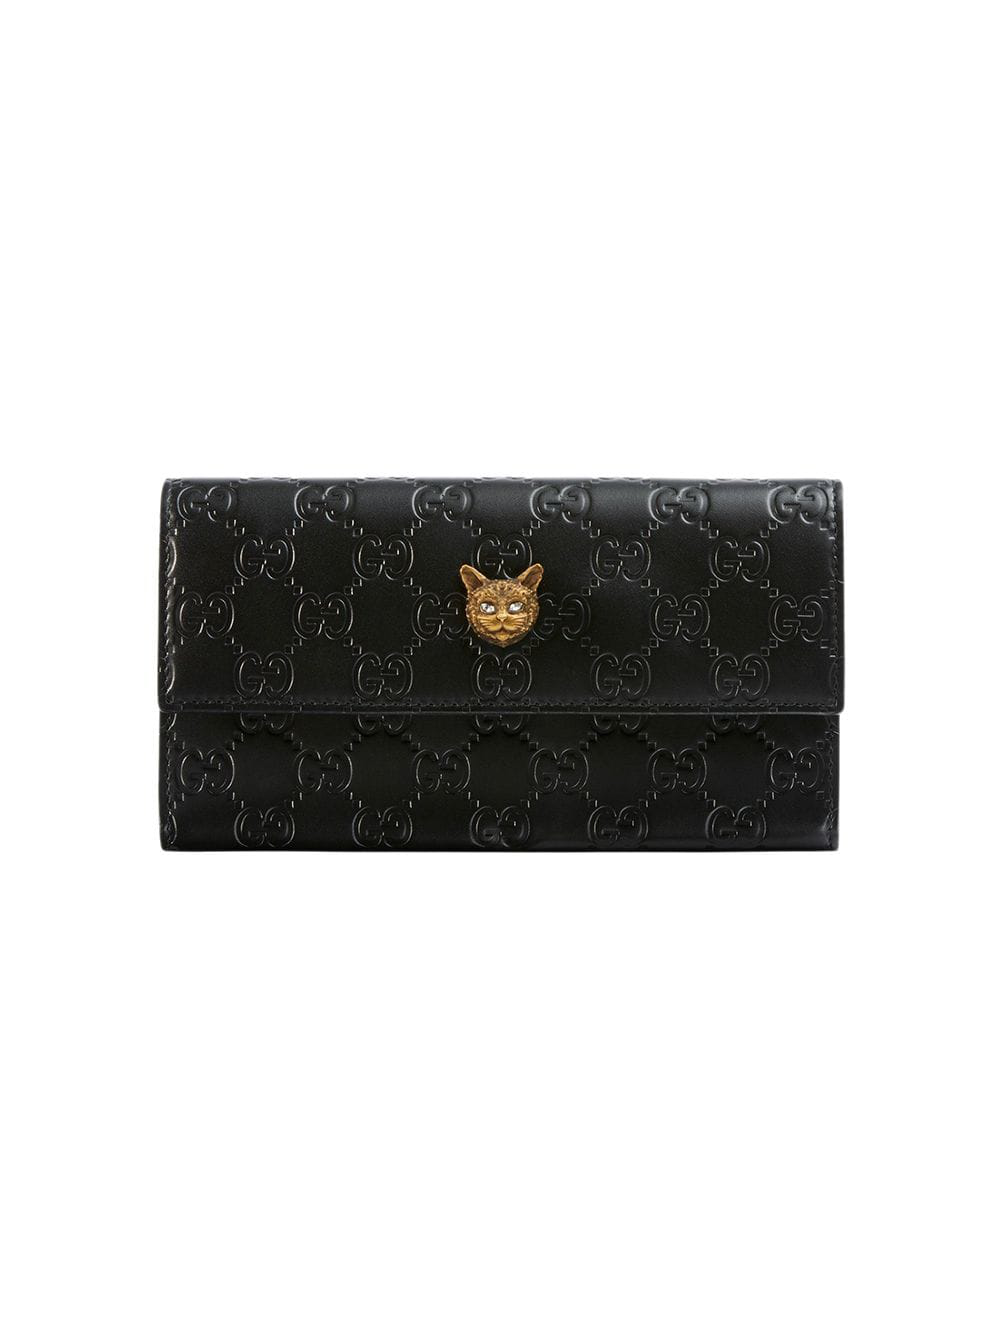 24f23f2431e5 Gucci Signature Continental Wallet With Cat - Black | ModeSens